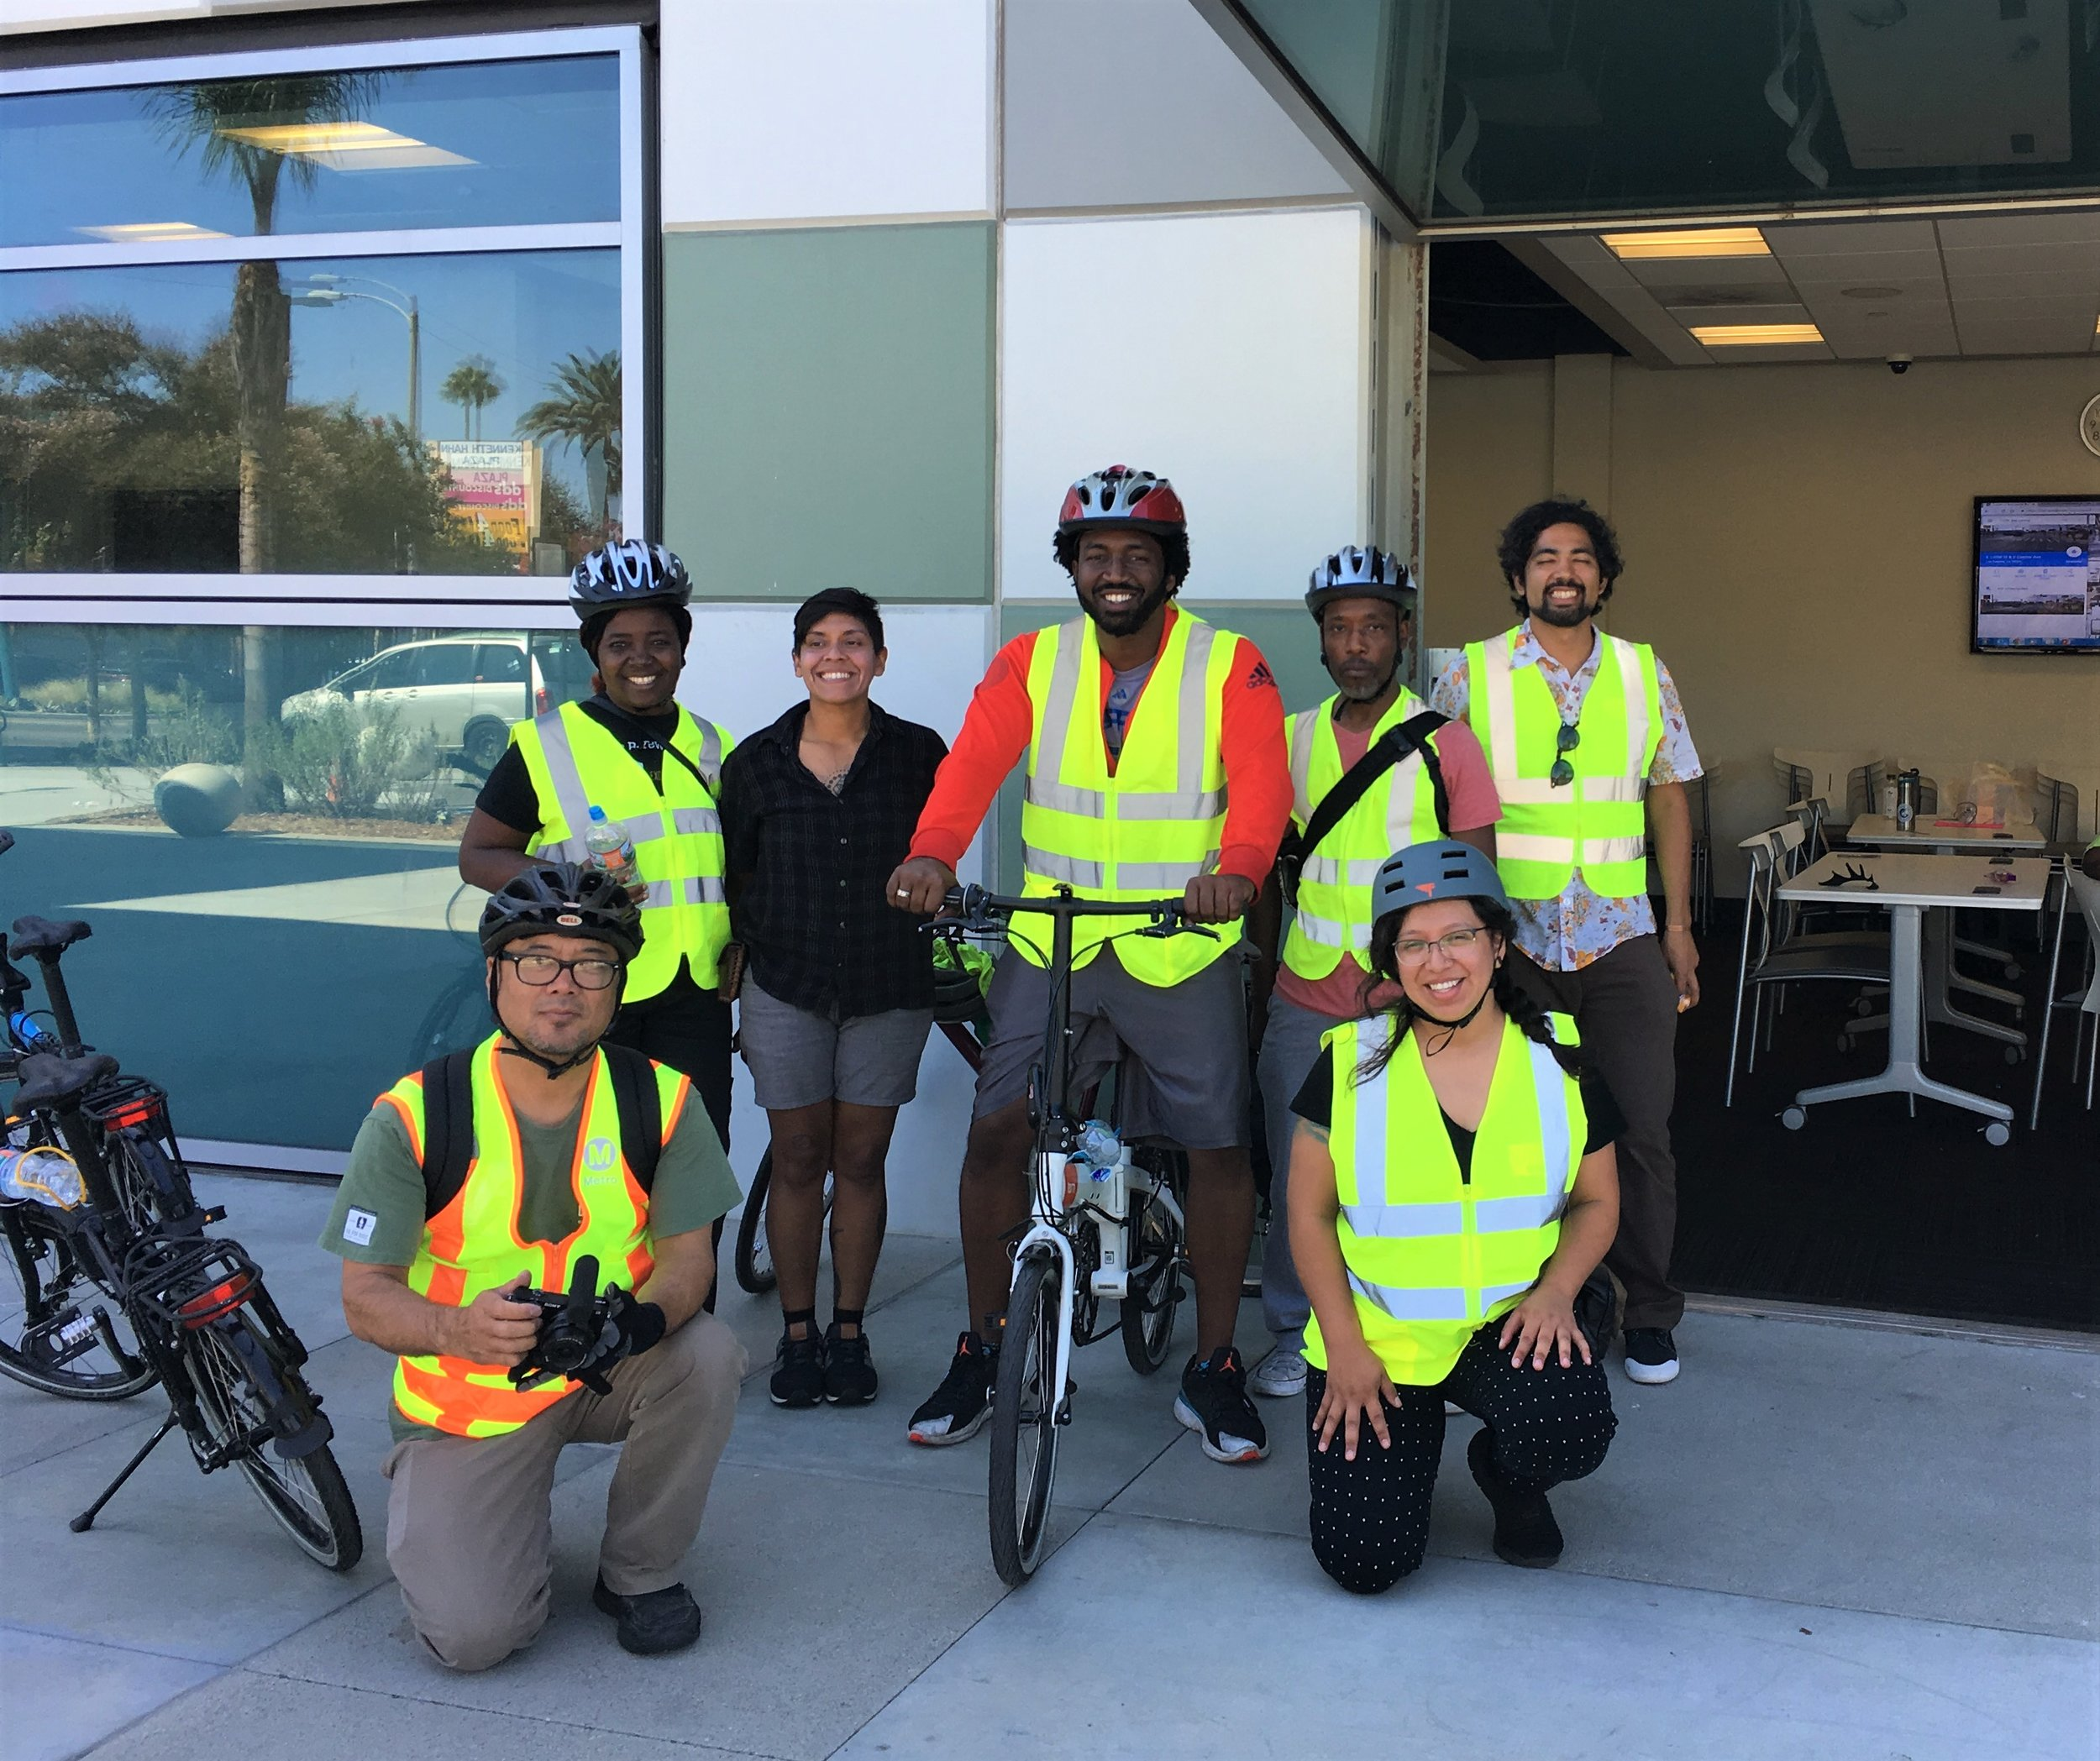 Workshop participants at the Willowbrook CPBST before they conducted the on-bike assessment.